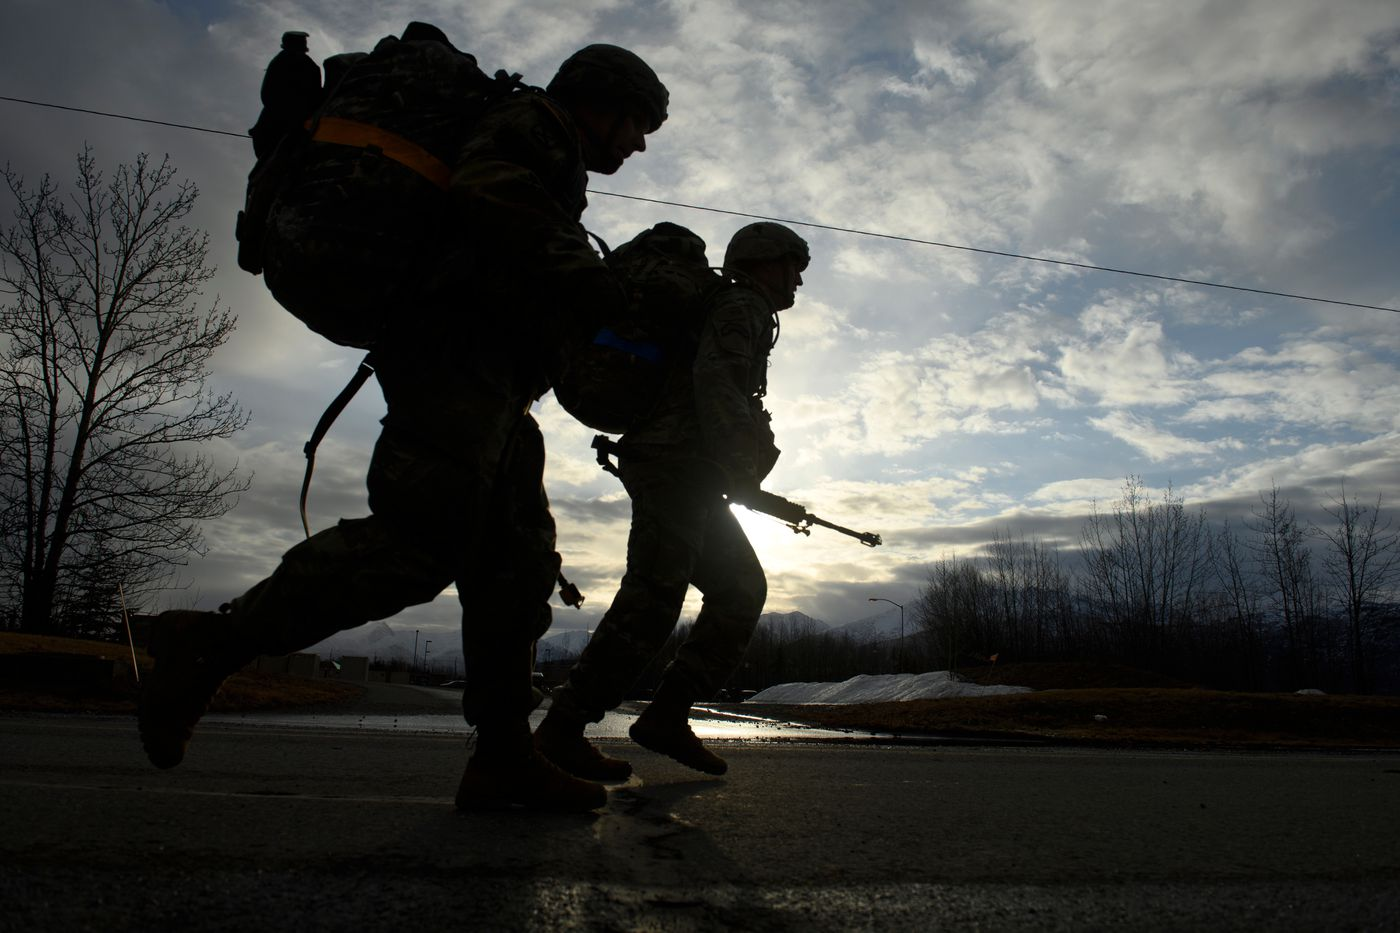 Paratroopers finish a 12-mile road march carrying about 70 pounds of gear on April 30, 2021, the final day of testing. (Marc Lester / ADN)